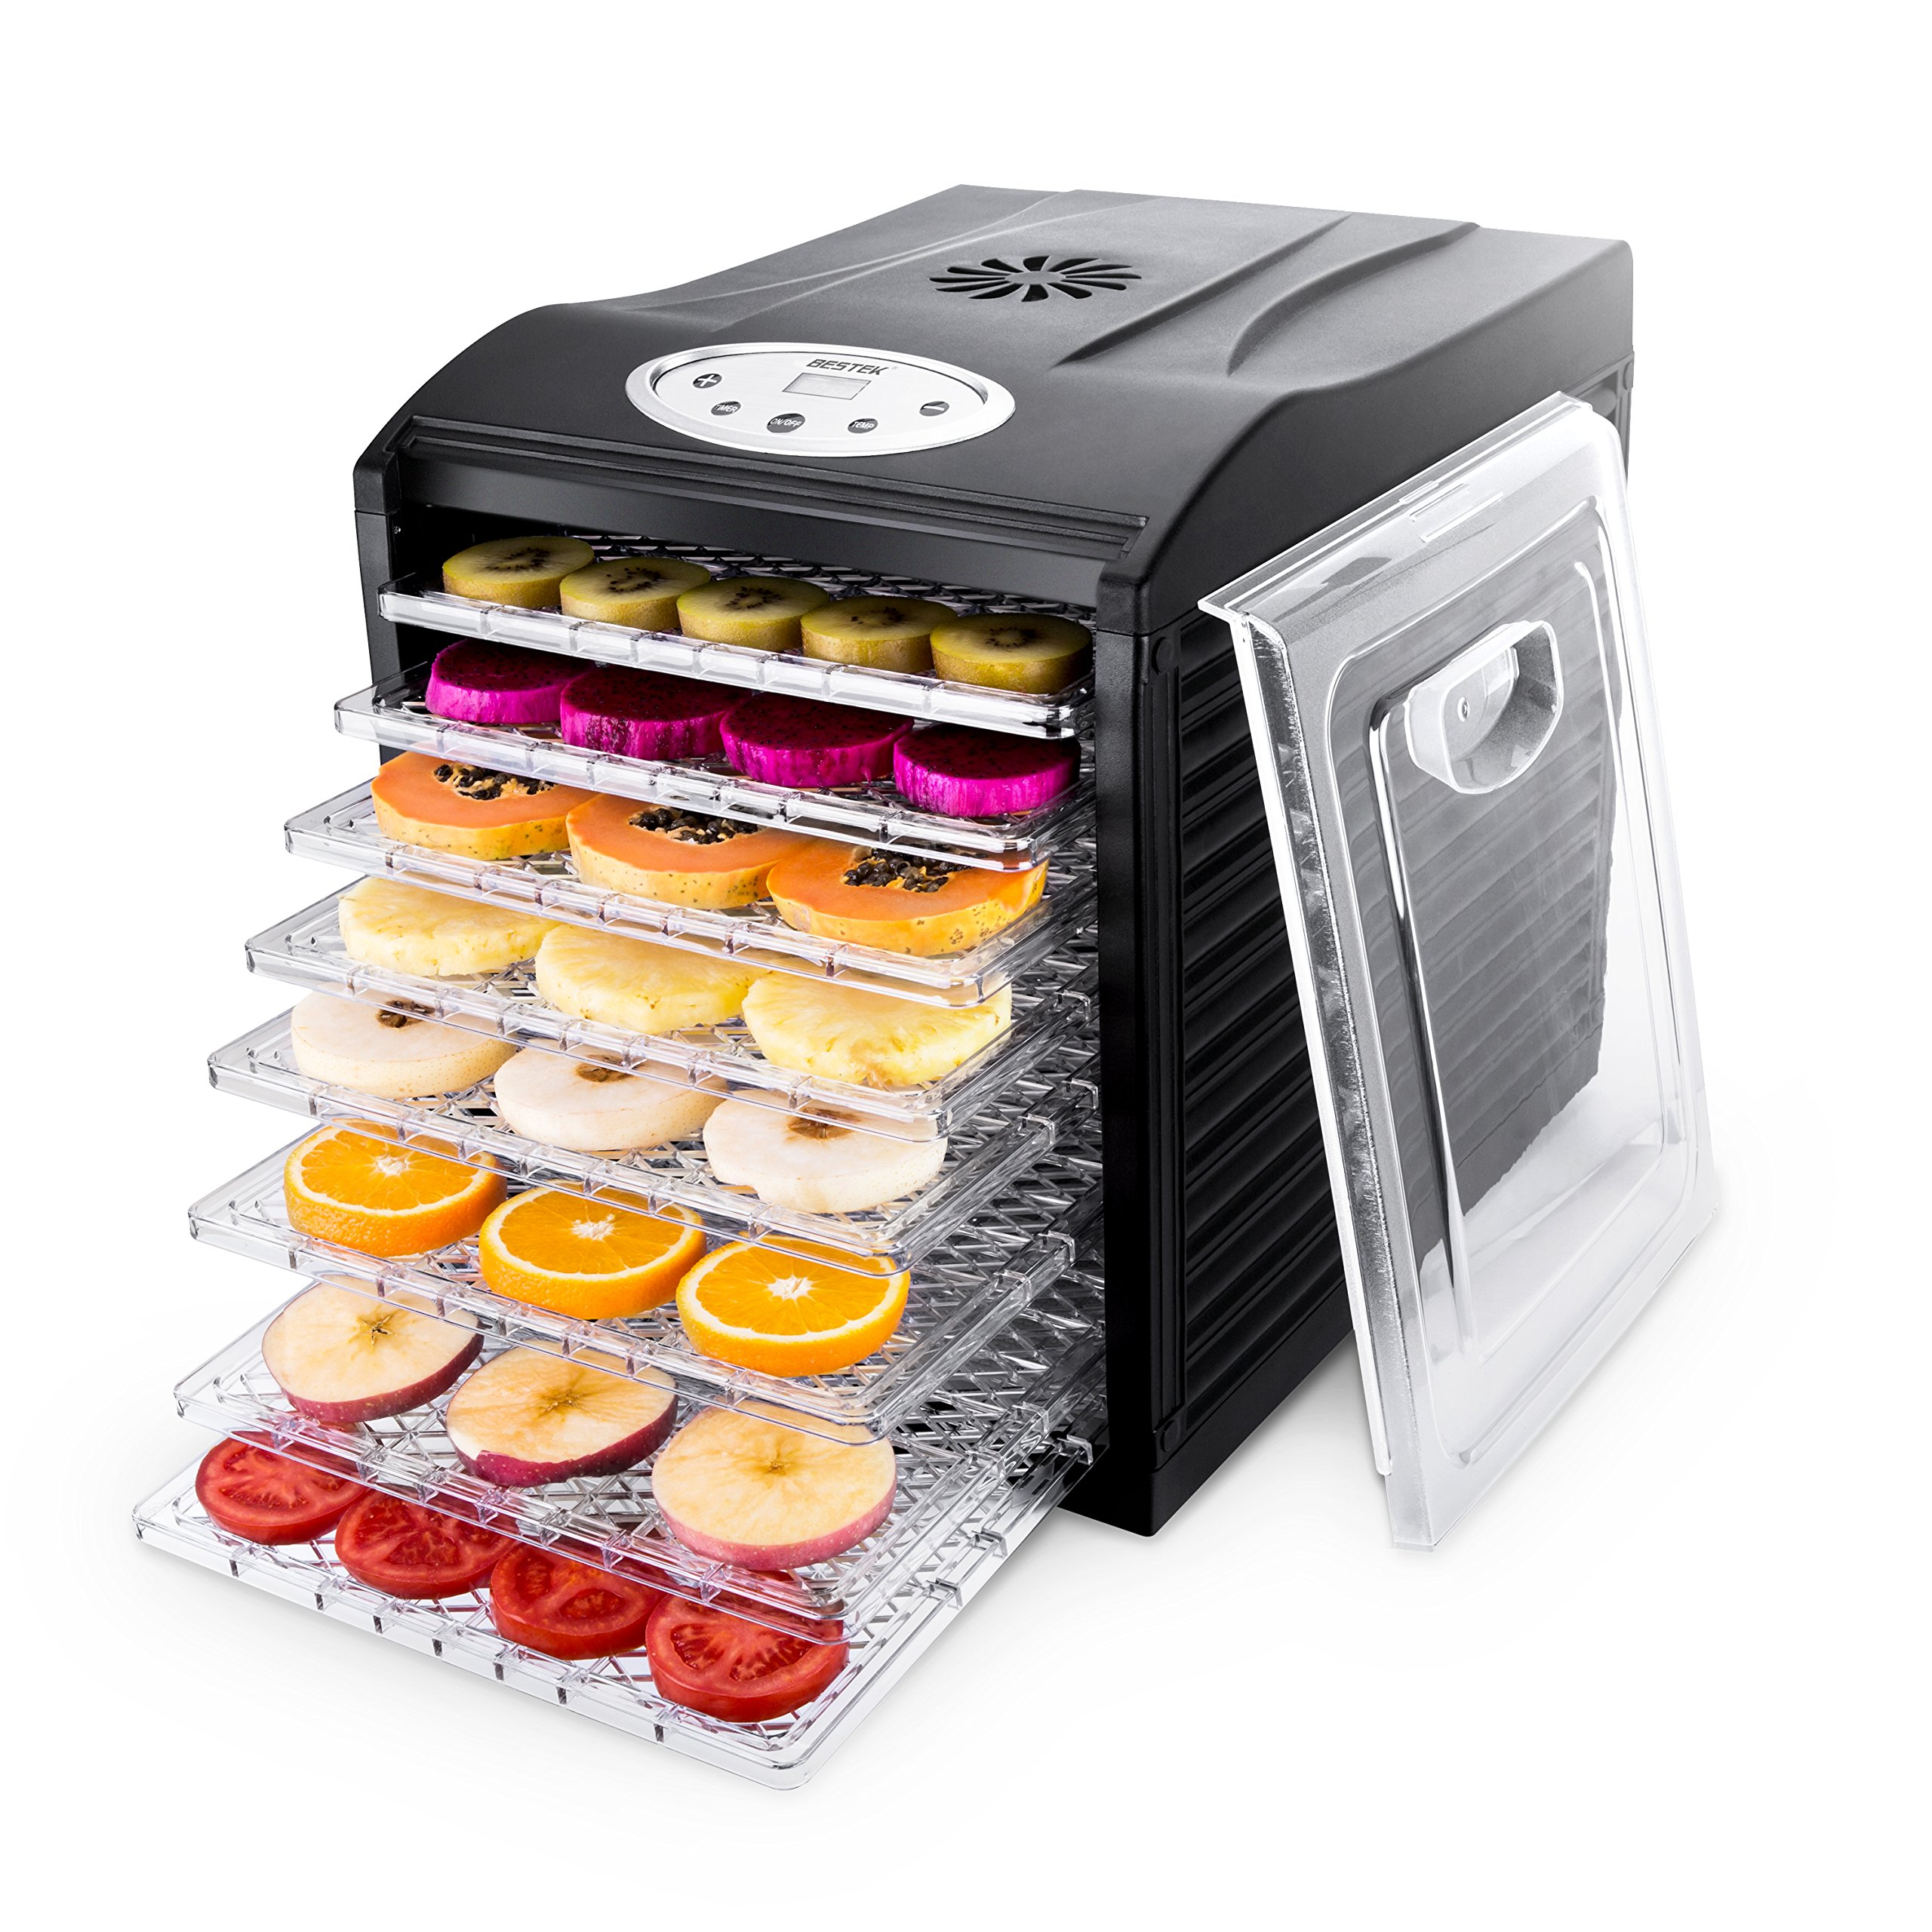 Food Dehydrator Machine by BESTEK, 9 Trays Quiet Fruit Dryer/ Jerky Maker Programmable with Timer, Temperature Control